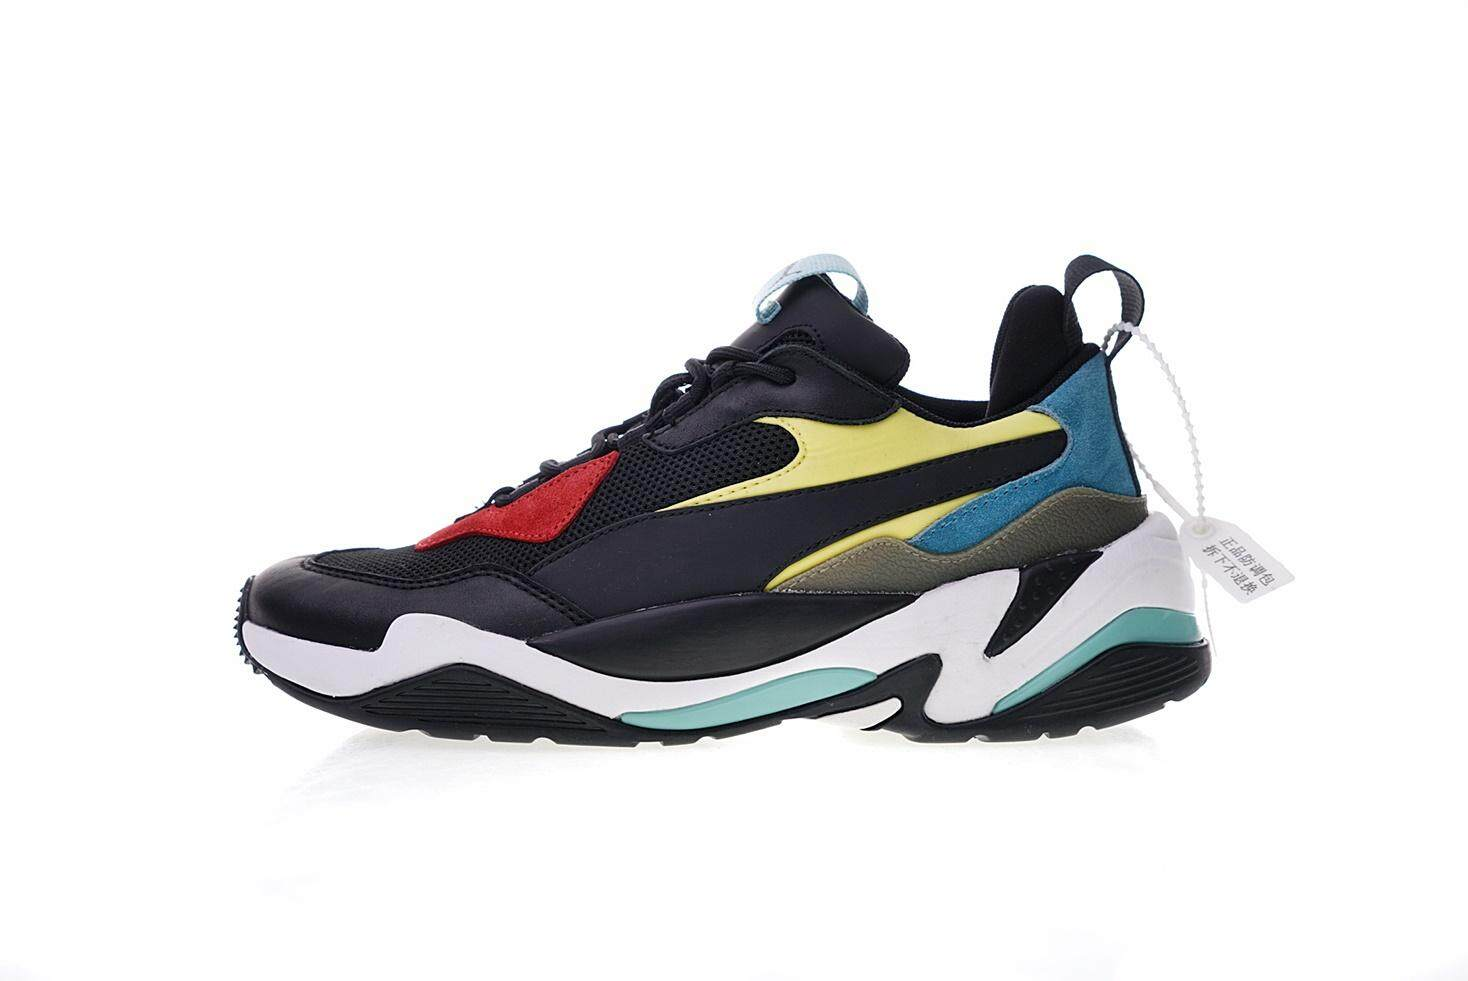 Women s Sports Shoes - Buy Women s Sports Shoes at Best Price in ... e1925c6f8